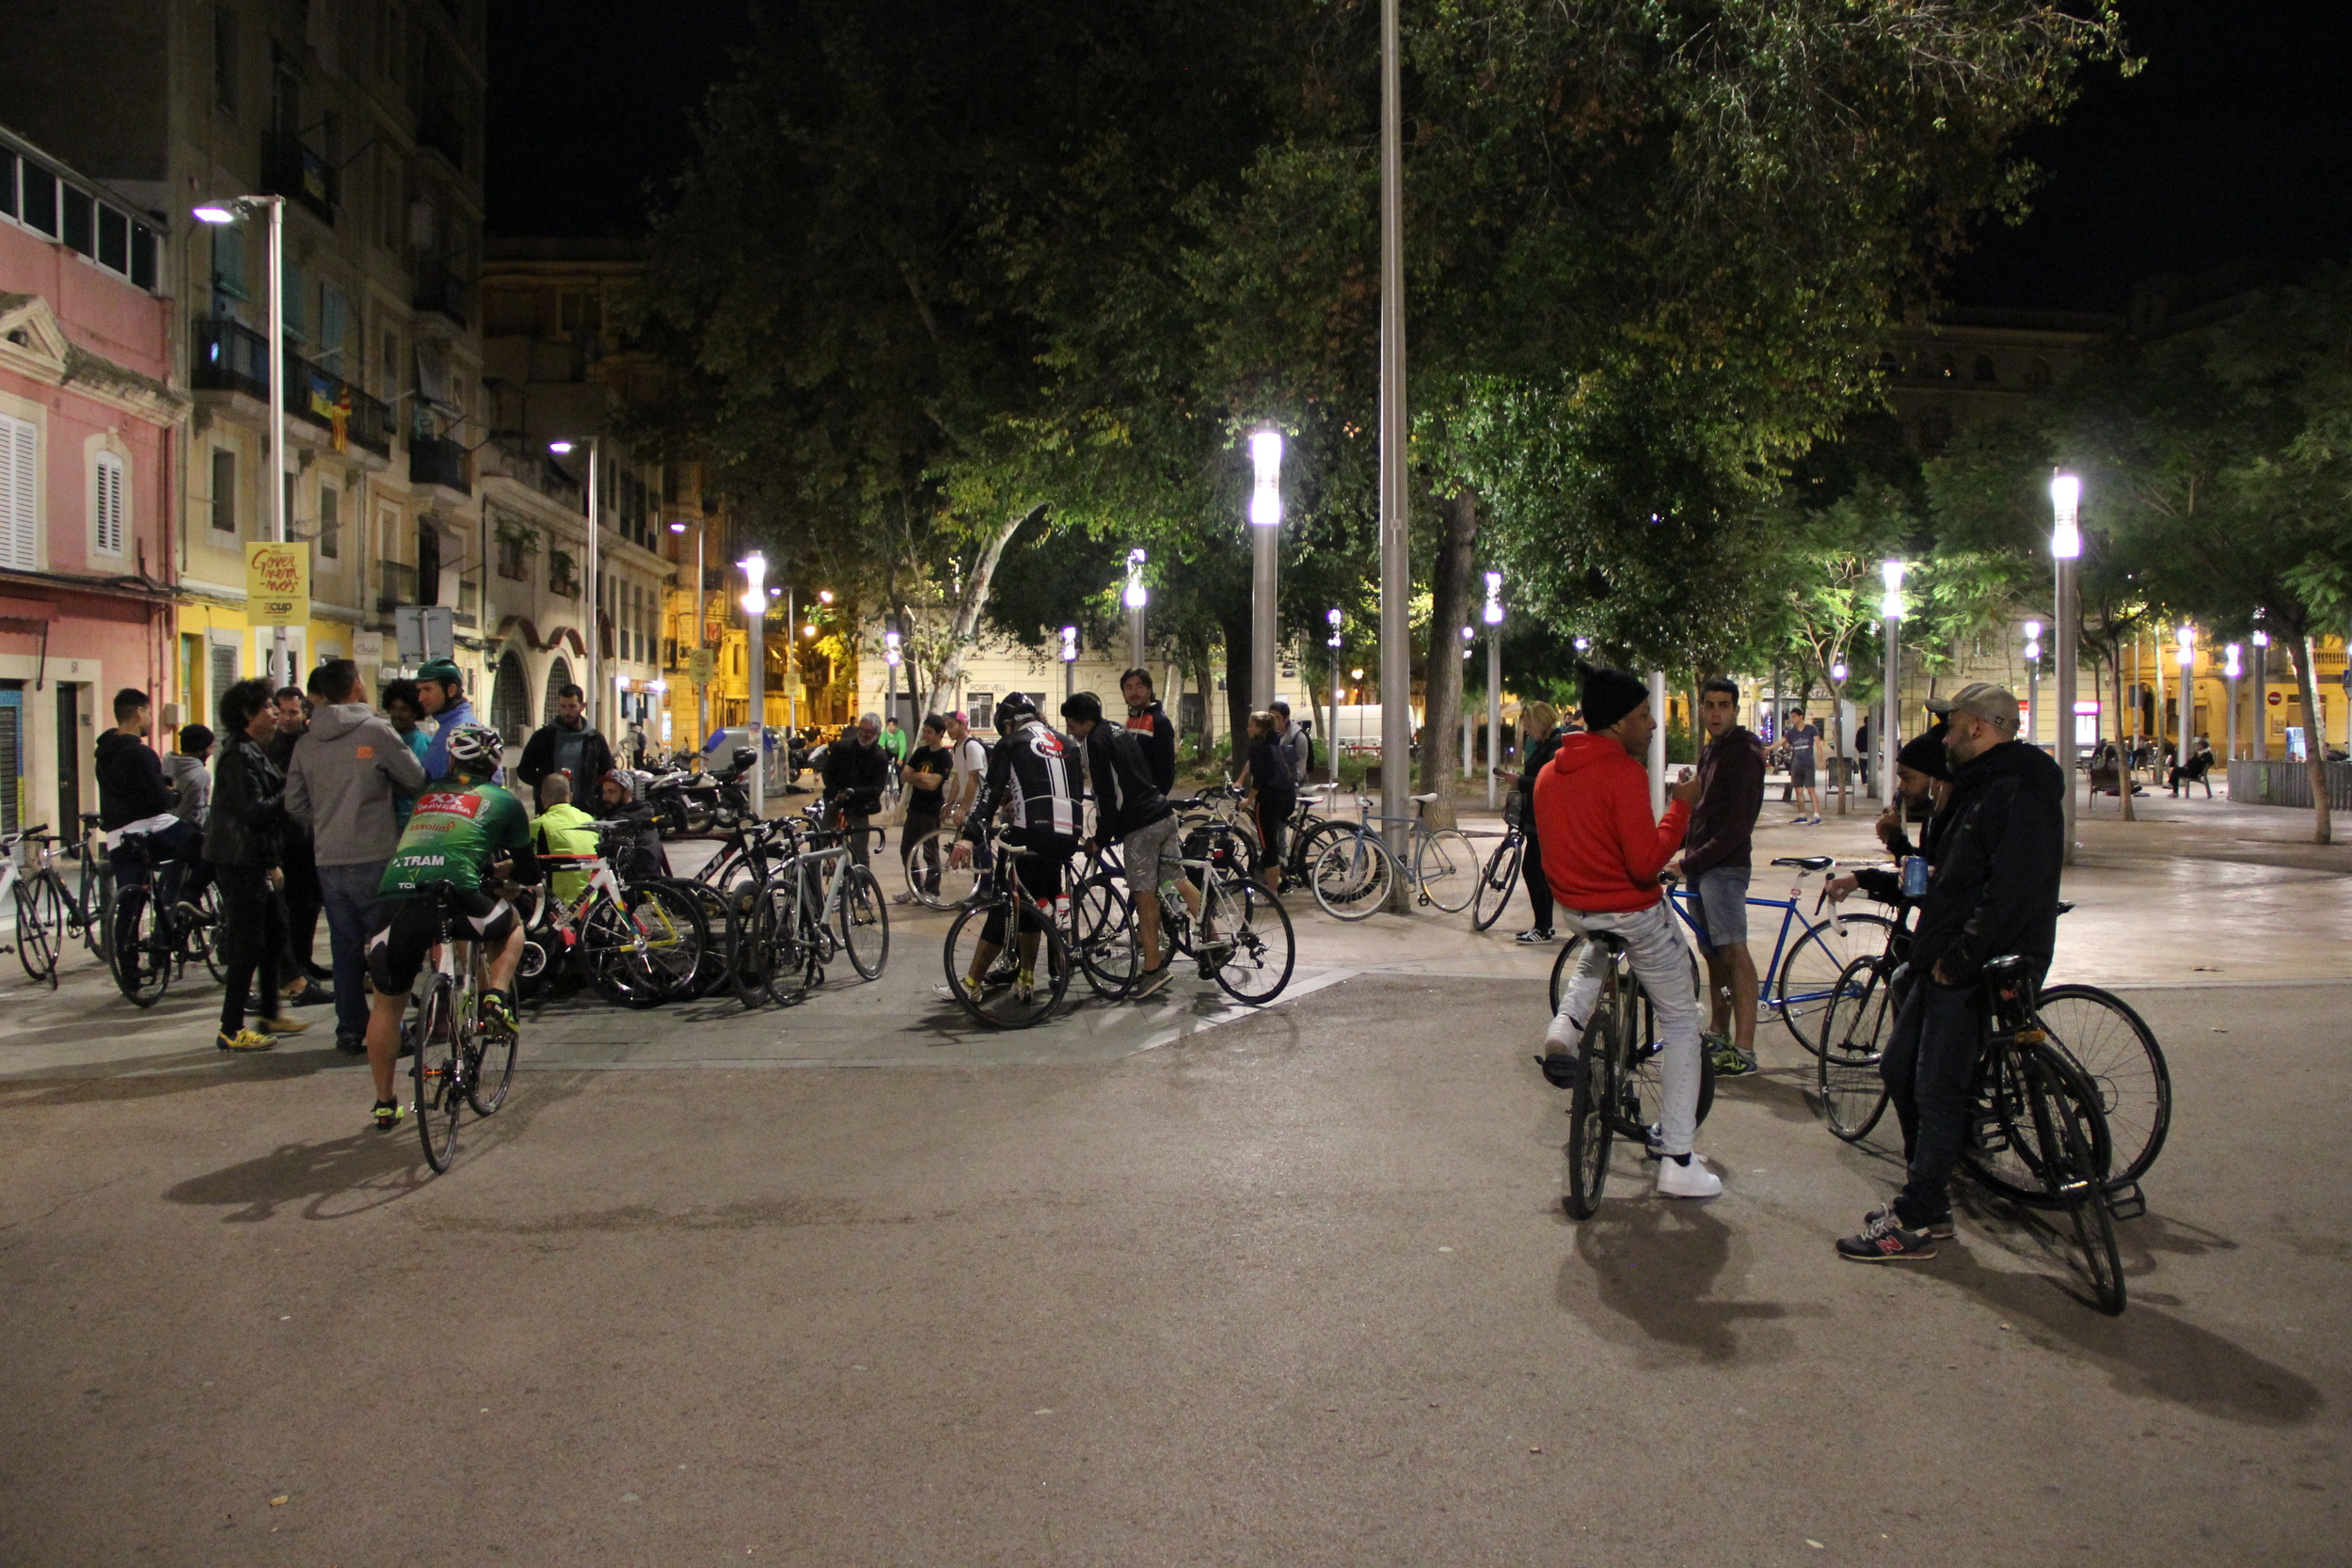 A world away from the touristy beach, Barceloneta's main square